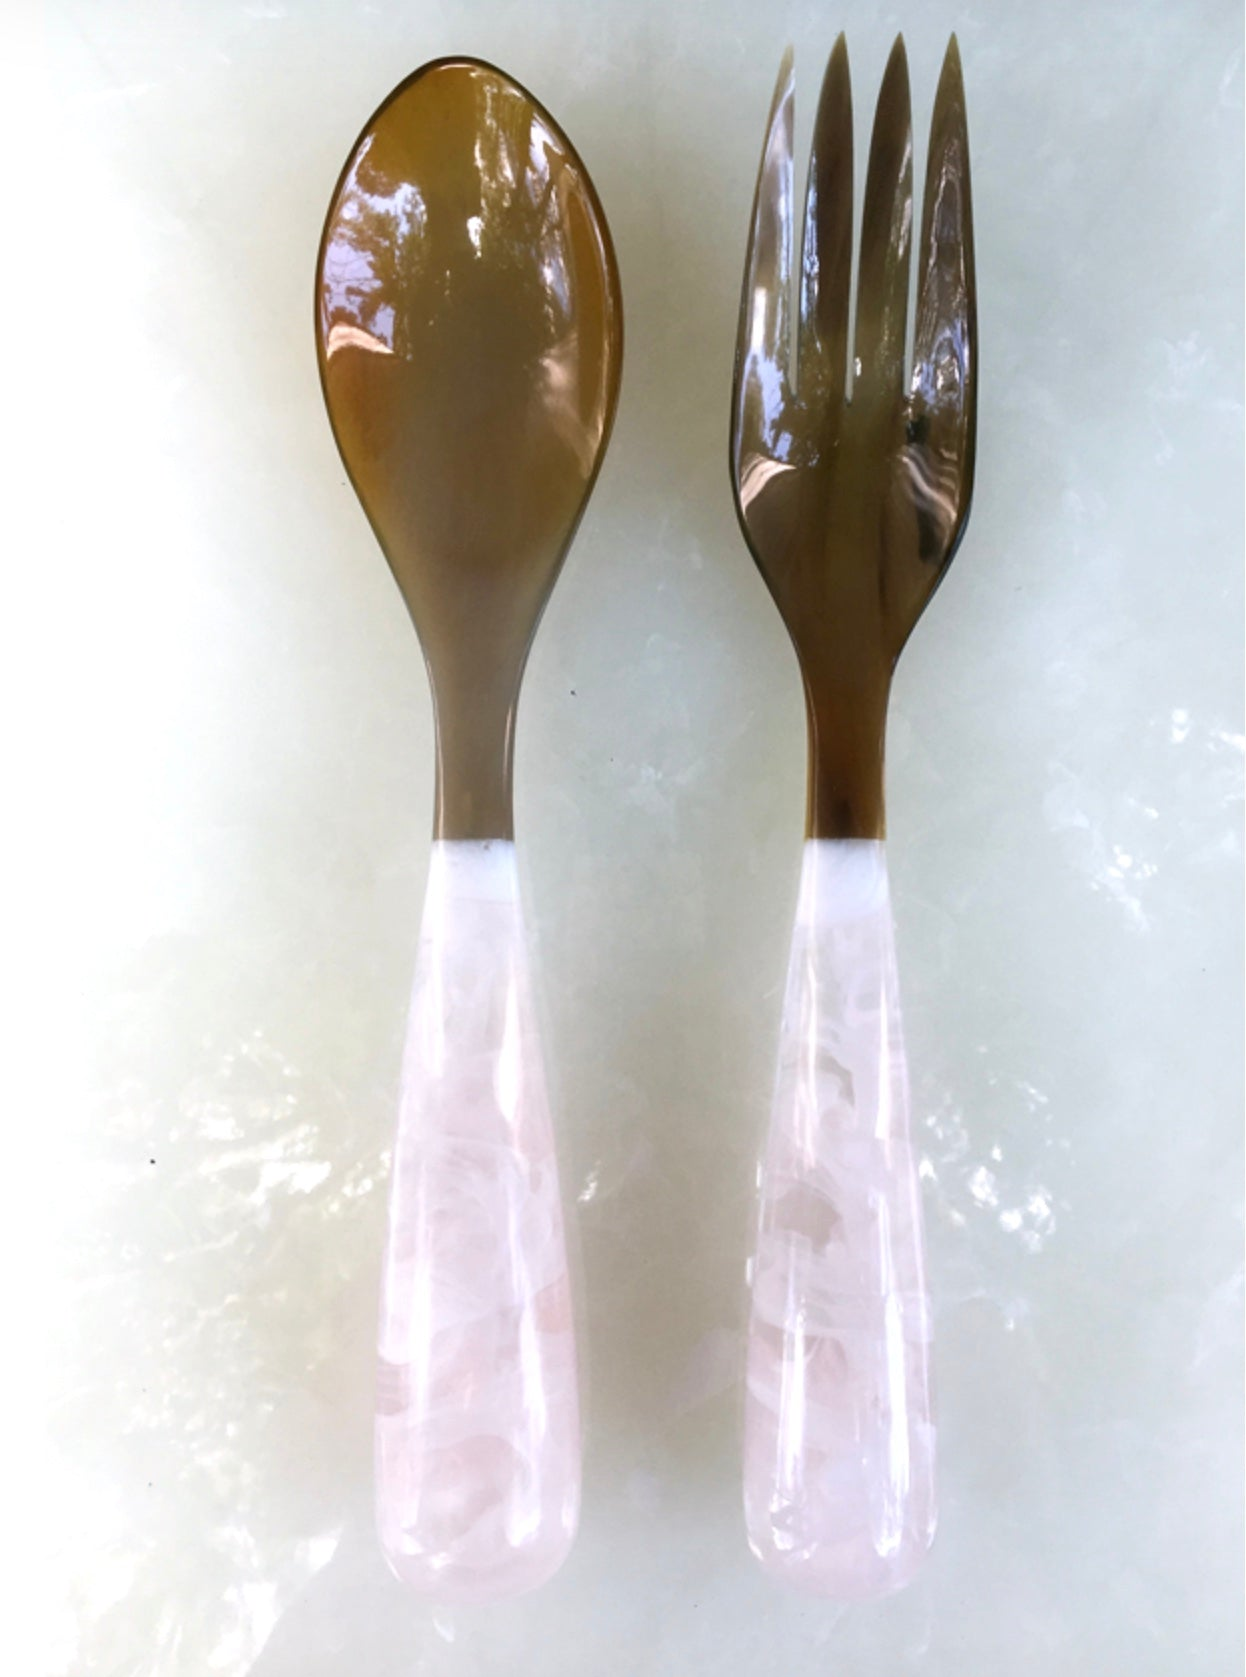 Grand Slam Salad Servers Set of 2 - White